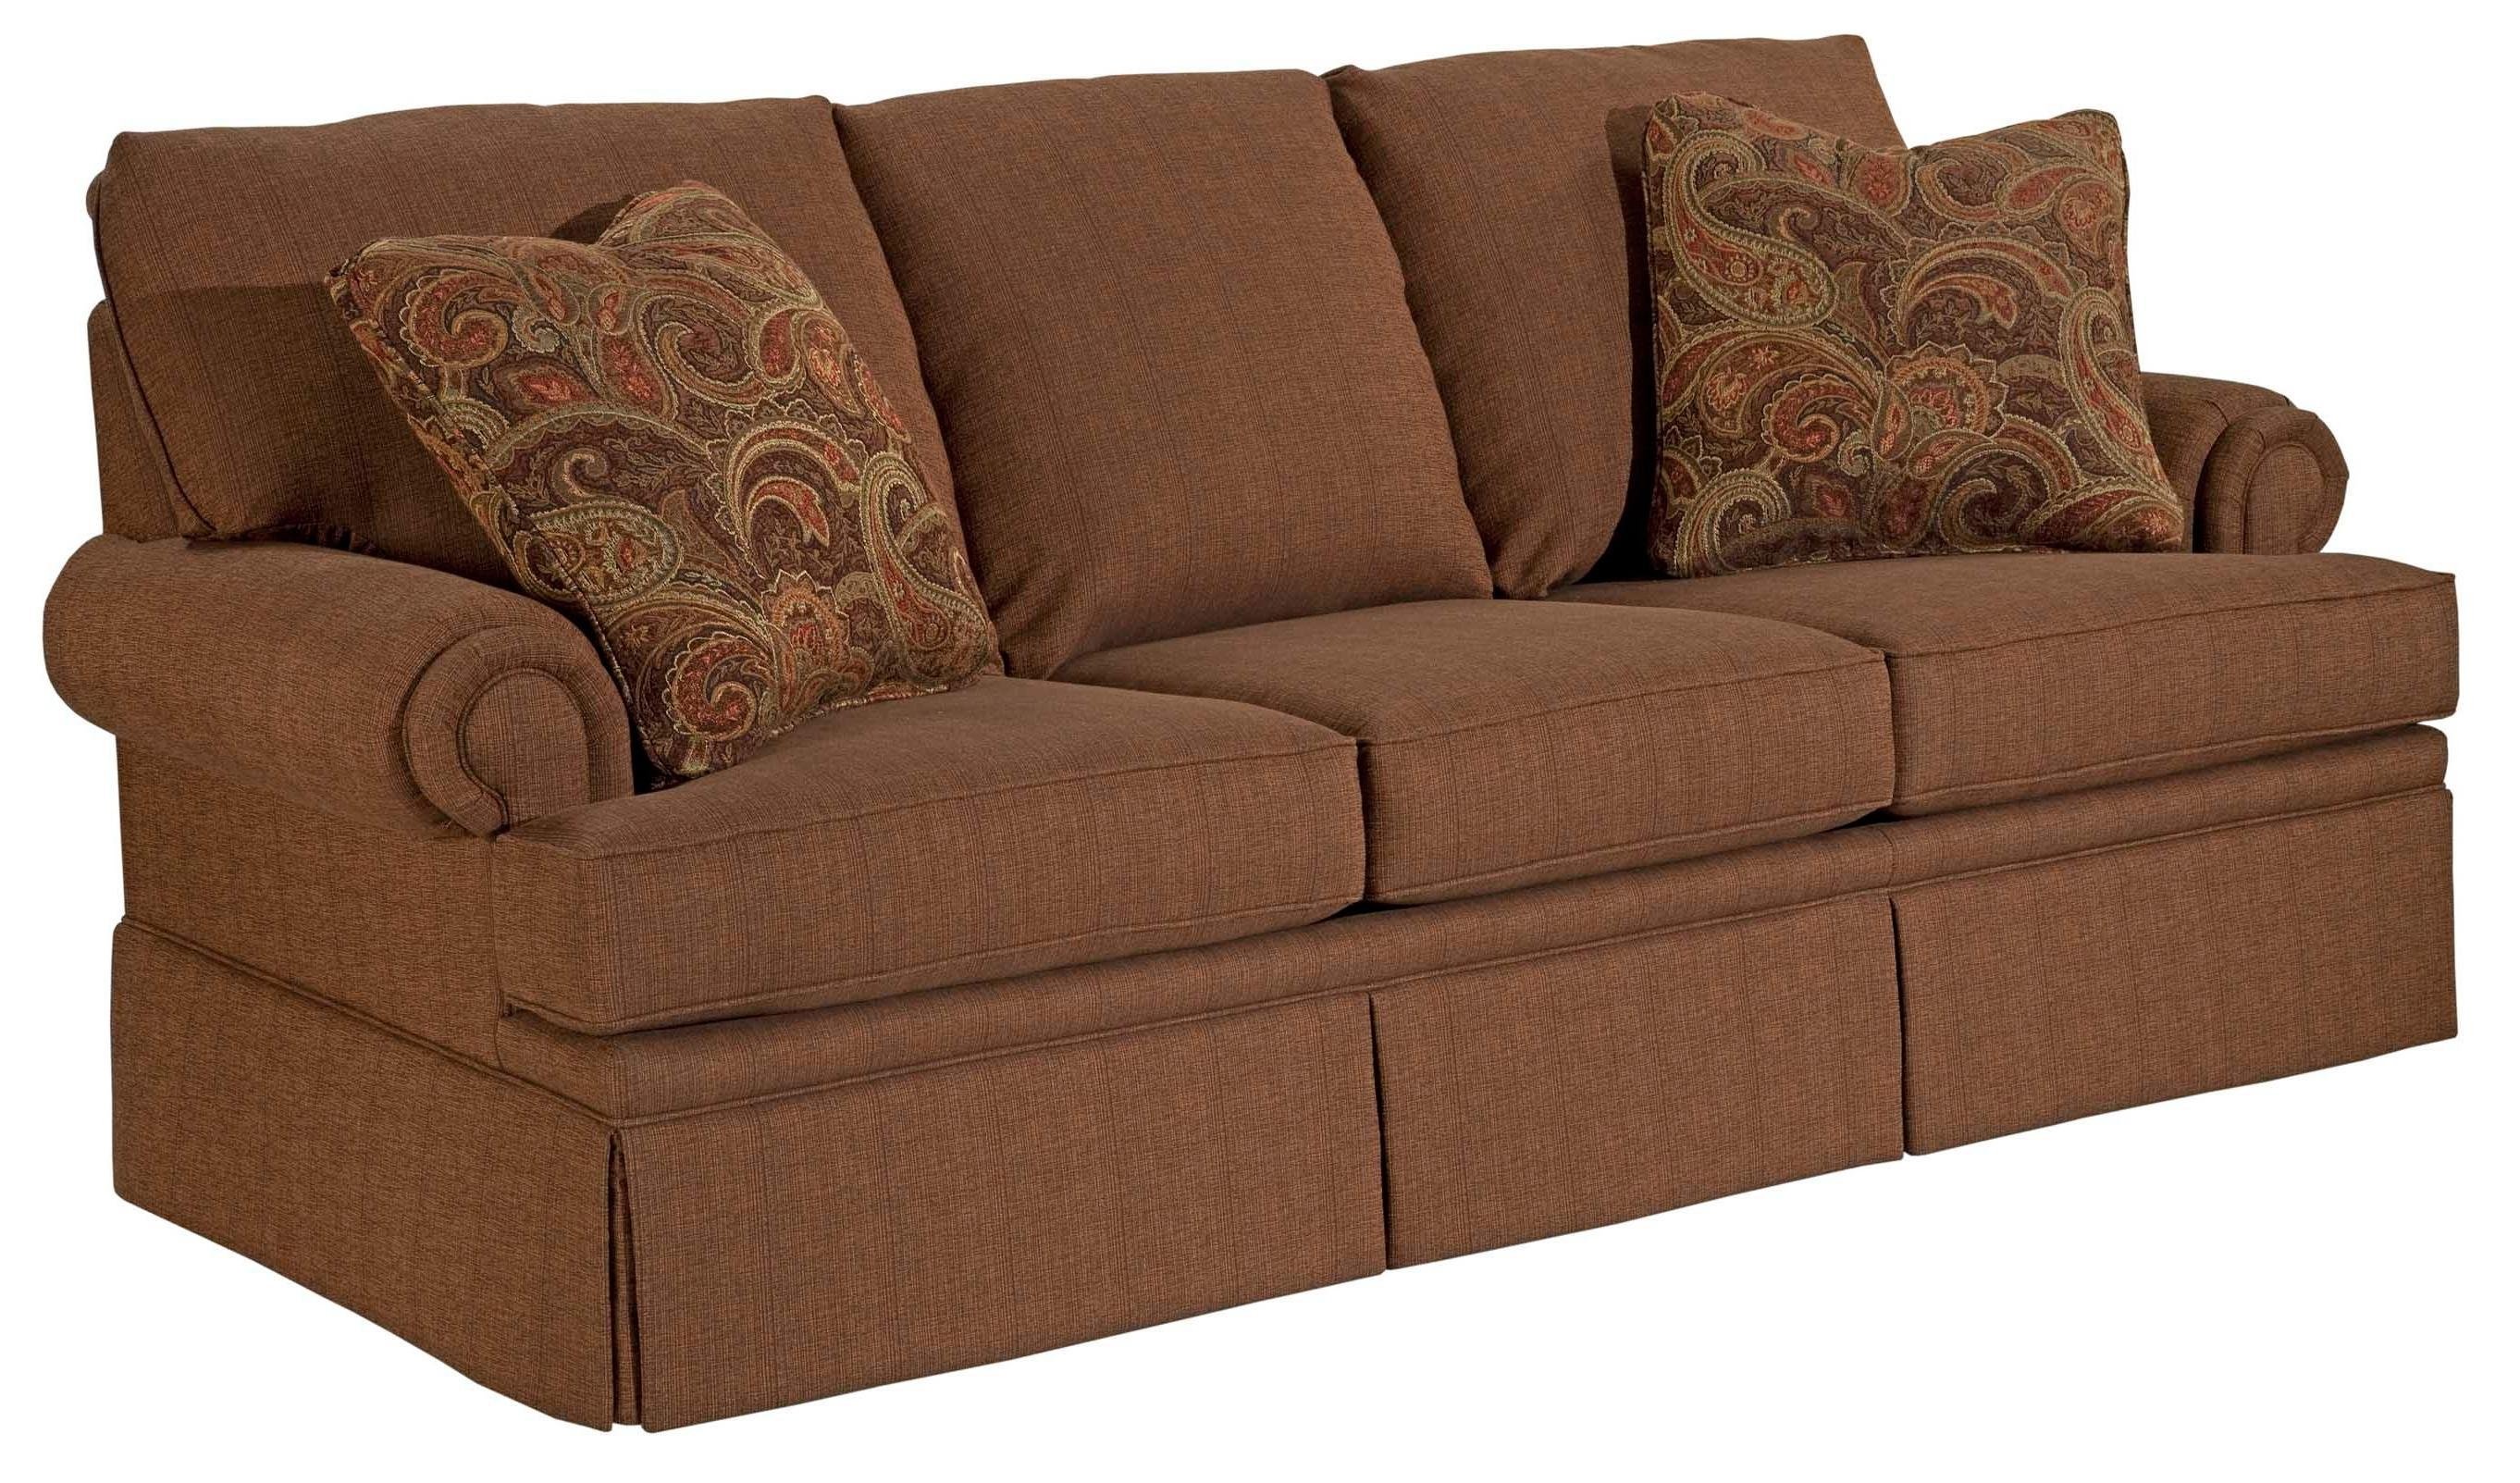 Broyhill Furniture Jenna Air Dream Sofa Sleeper With Queen Size Pertaining To Broyhill Sofas (Image 6 of 20)